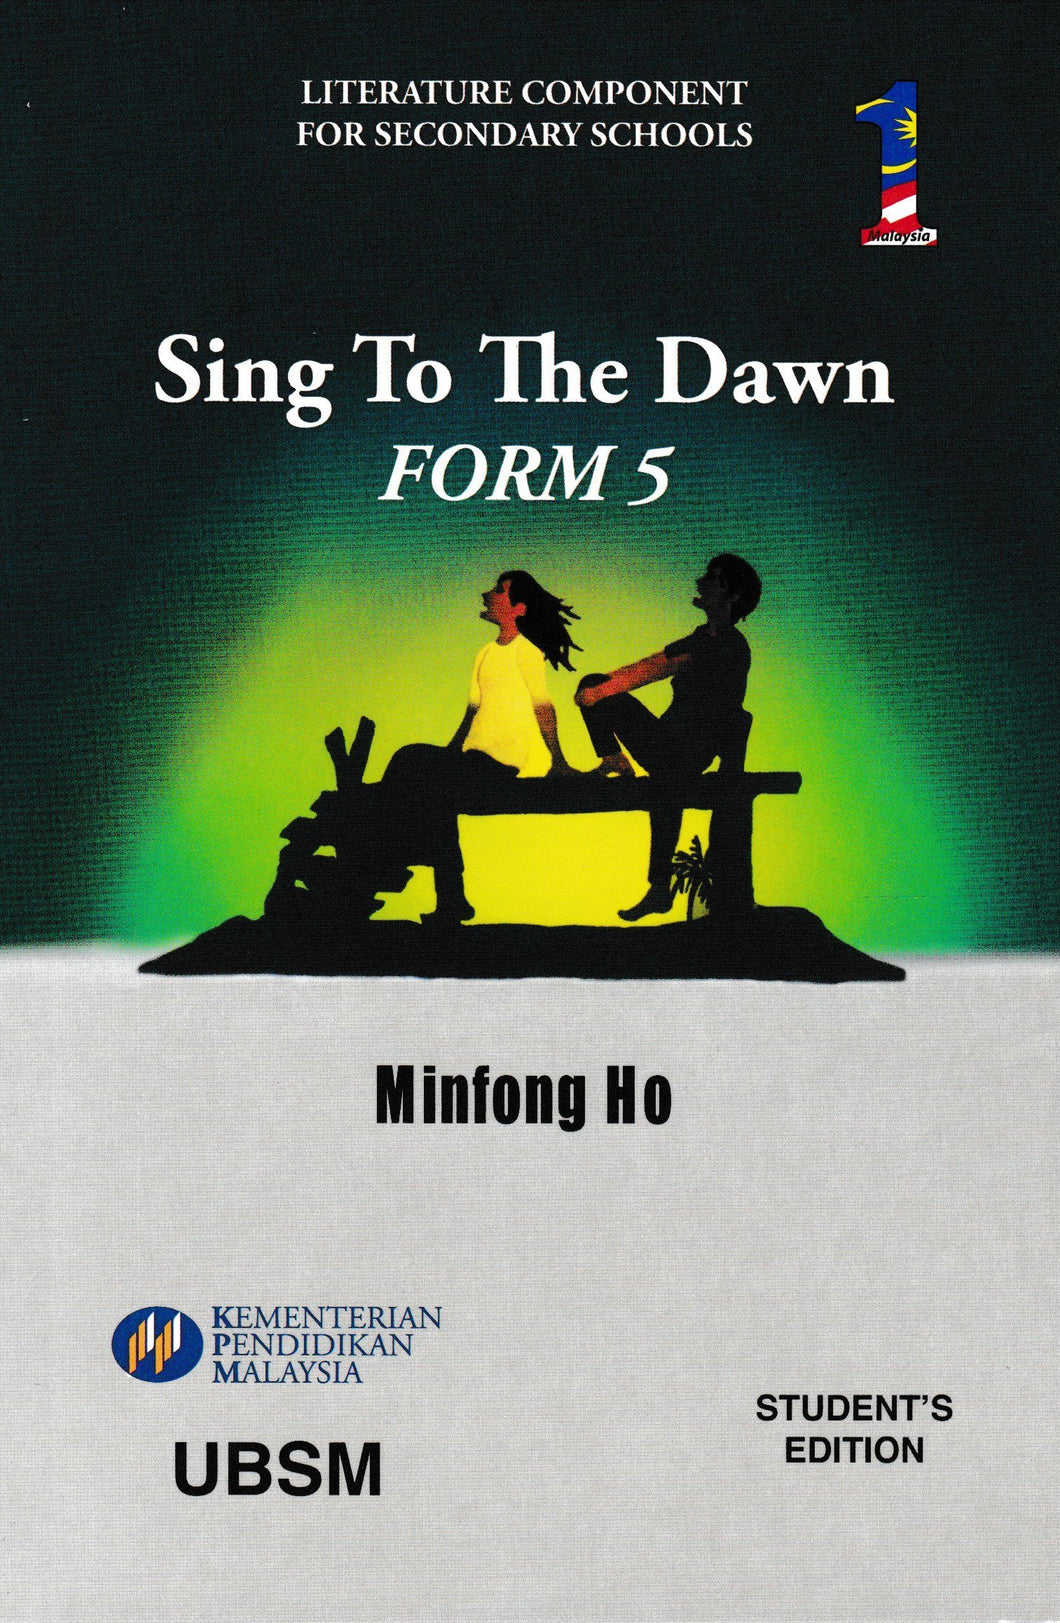 UBSM: Buku Teks Komsas Sing To The Dawn Form 5 Literature Component Textbook